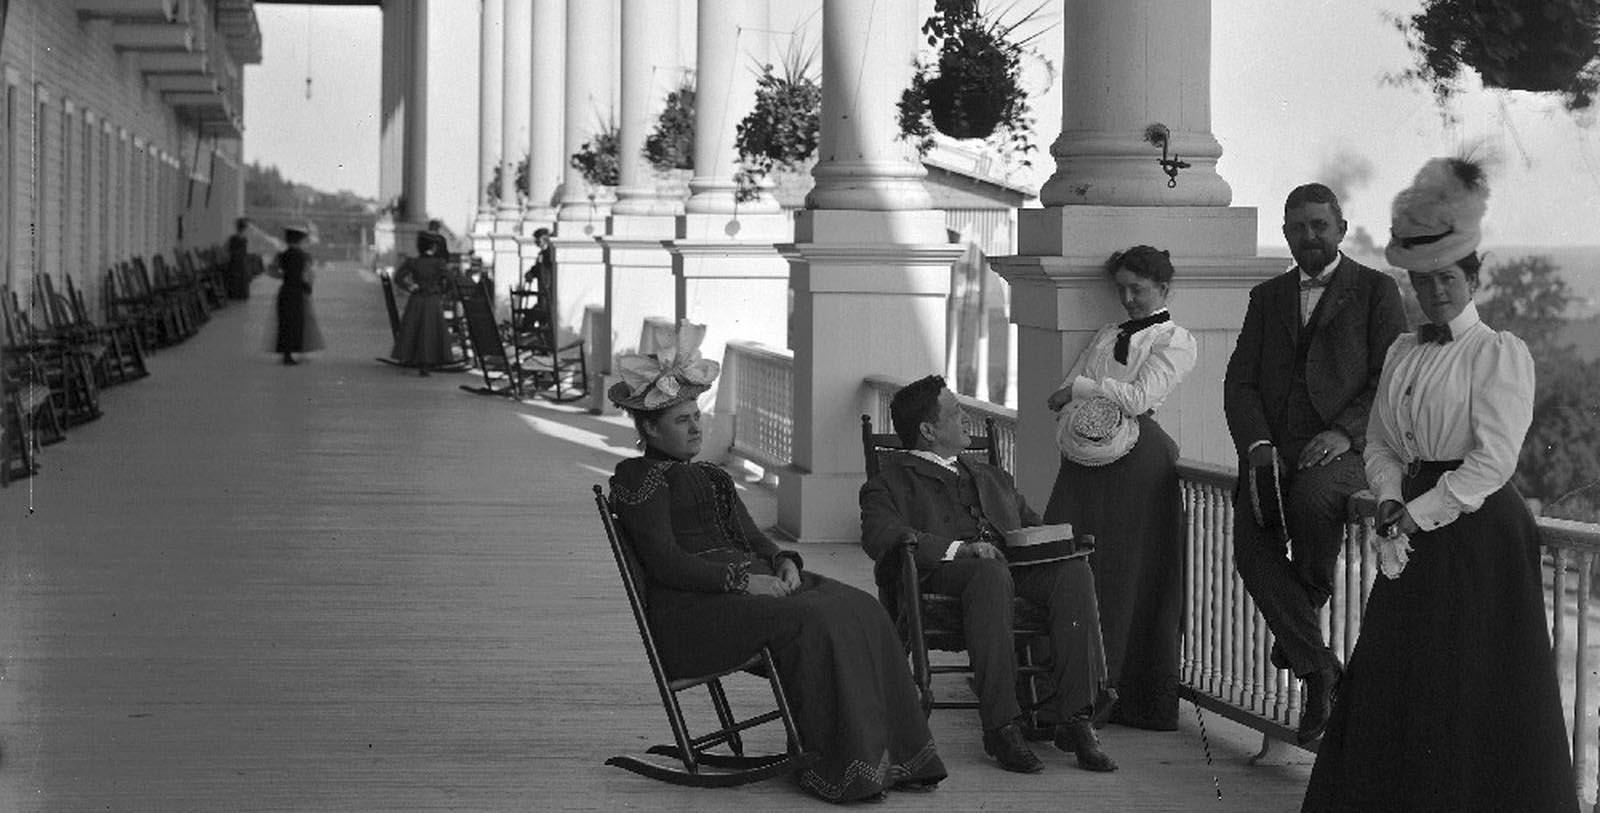 Historic images of people standing on porch at Grand Hotel, 1887, Member of Historic Hotels of America, in Mackinac Island, Michigan, Discover